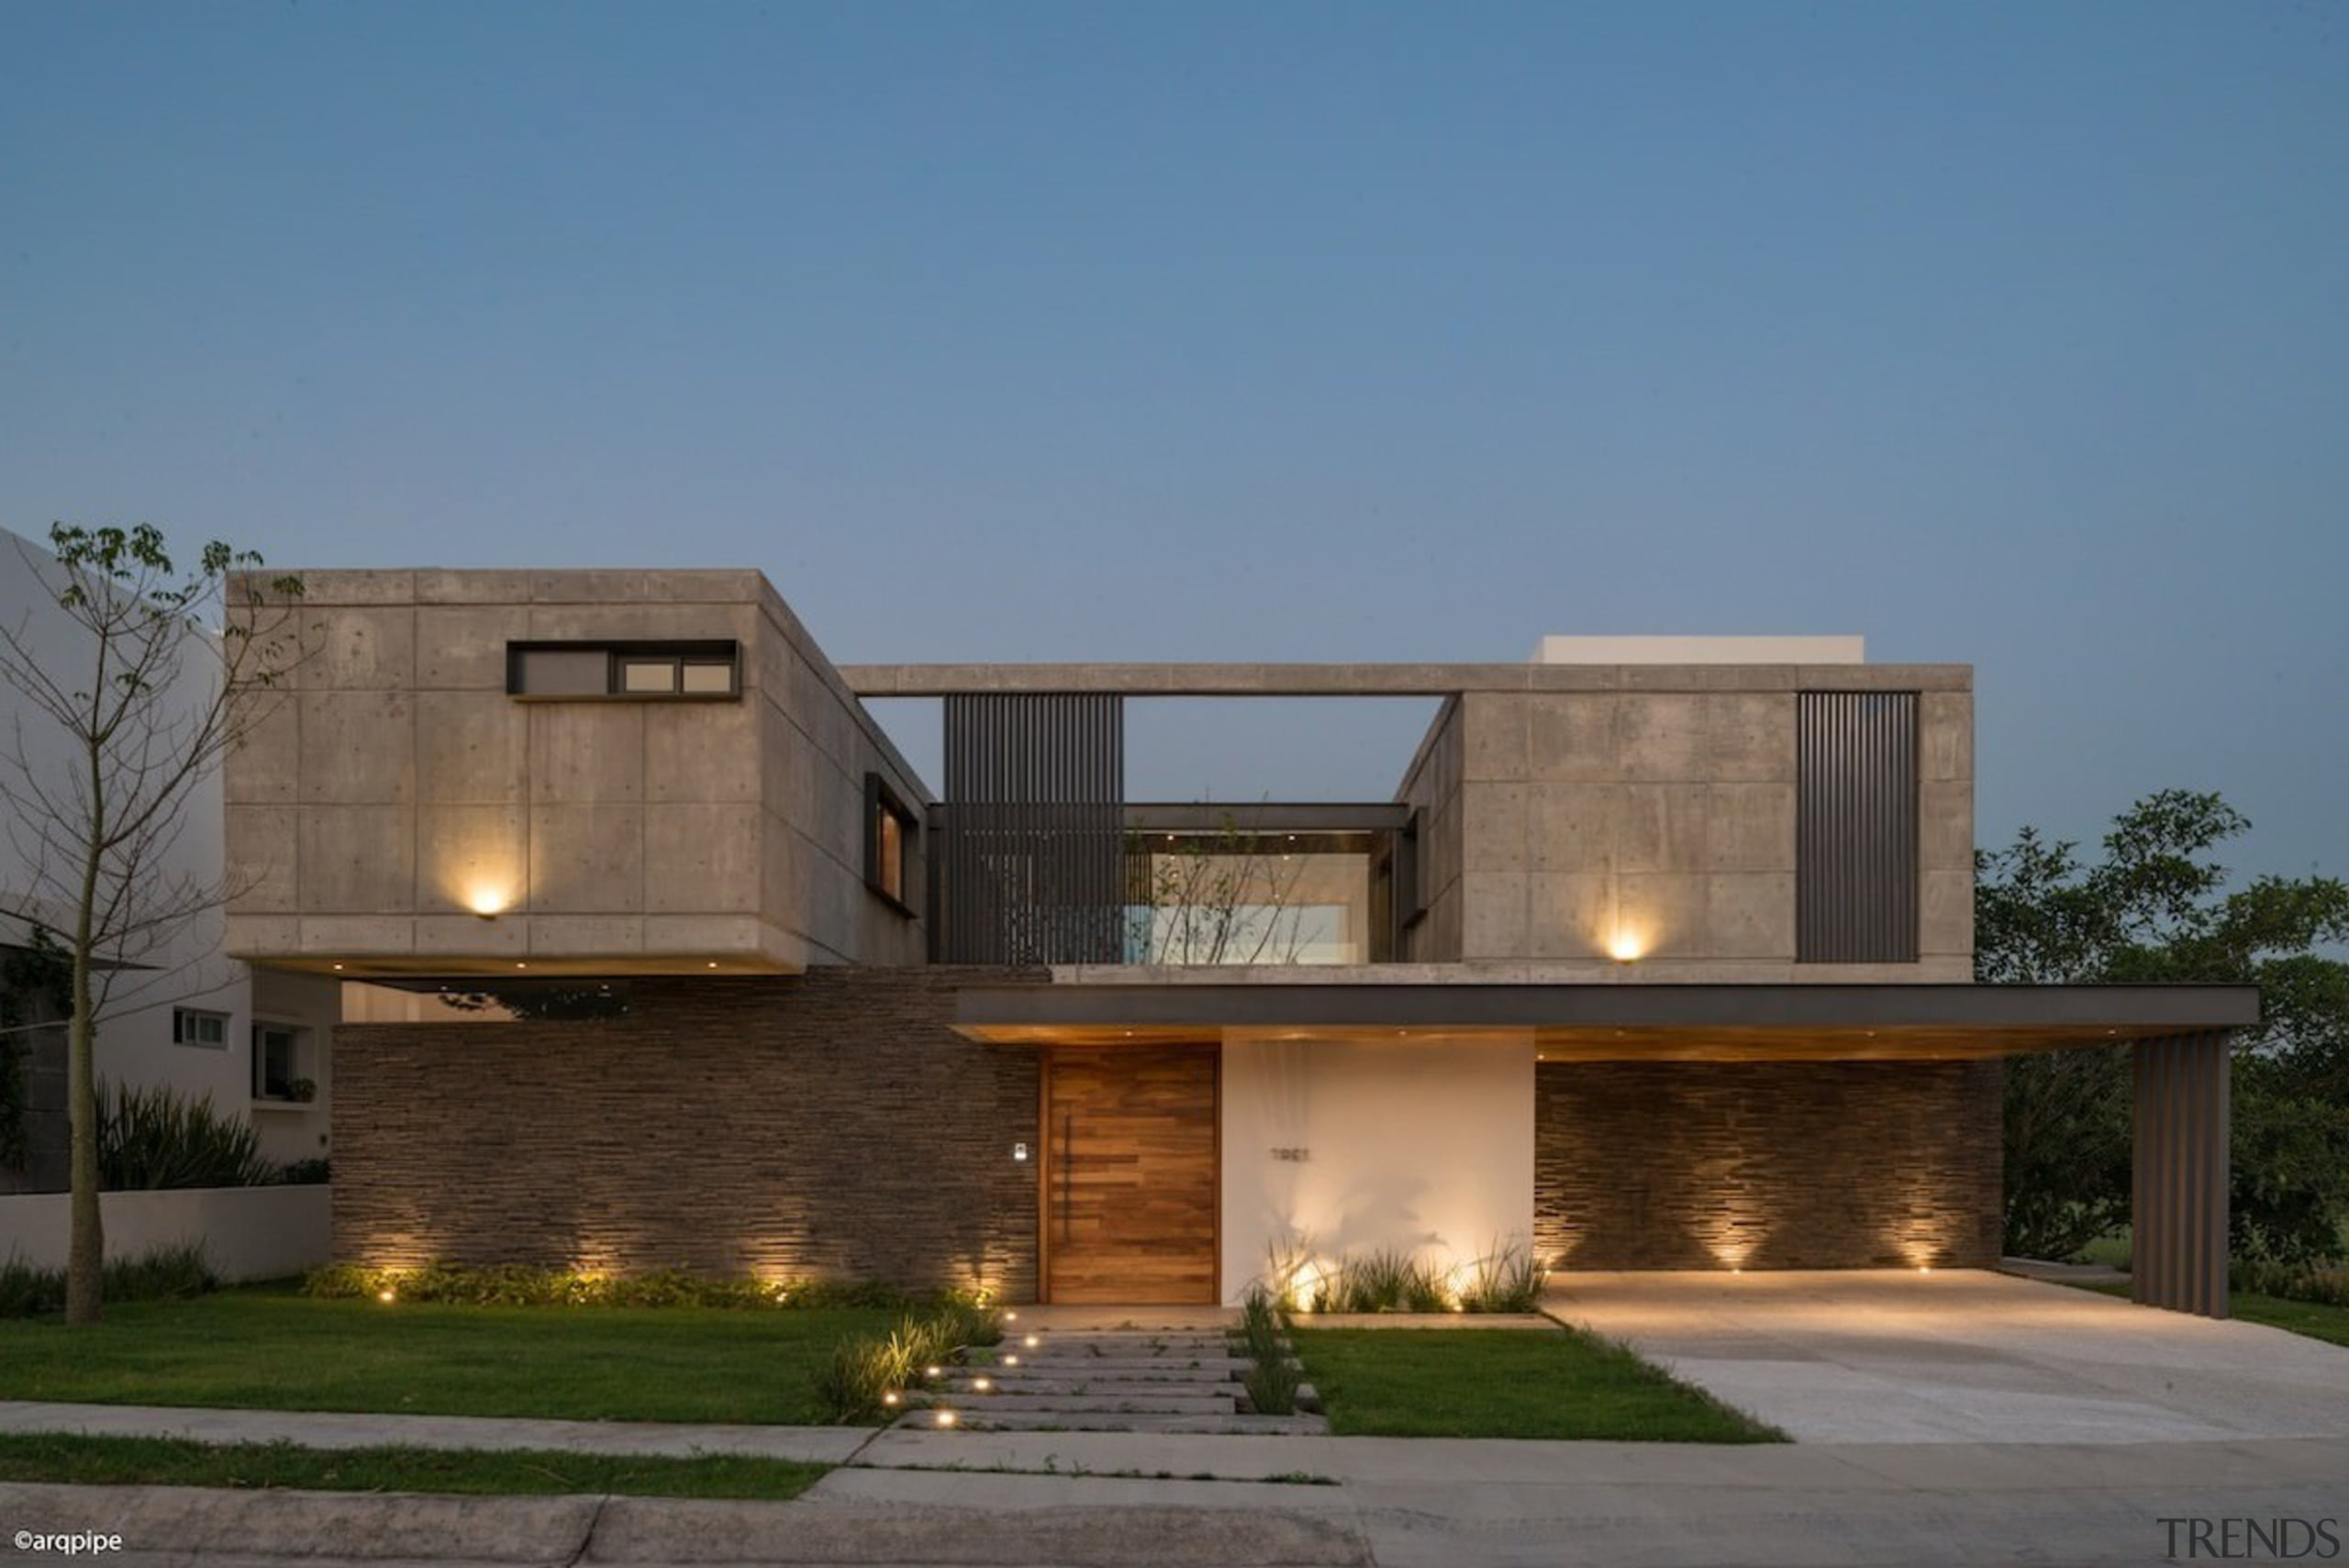 Colima home/Di Frenna Arquitectos - Colima home/Di Frenna architecture, building, elevation, estate, facade, home, house, property, real estate, residential area, teal, brown